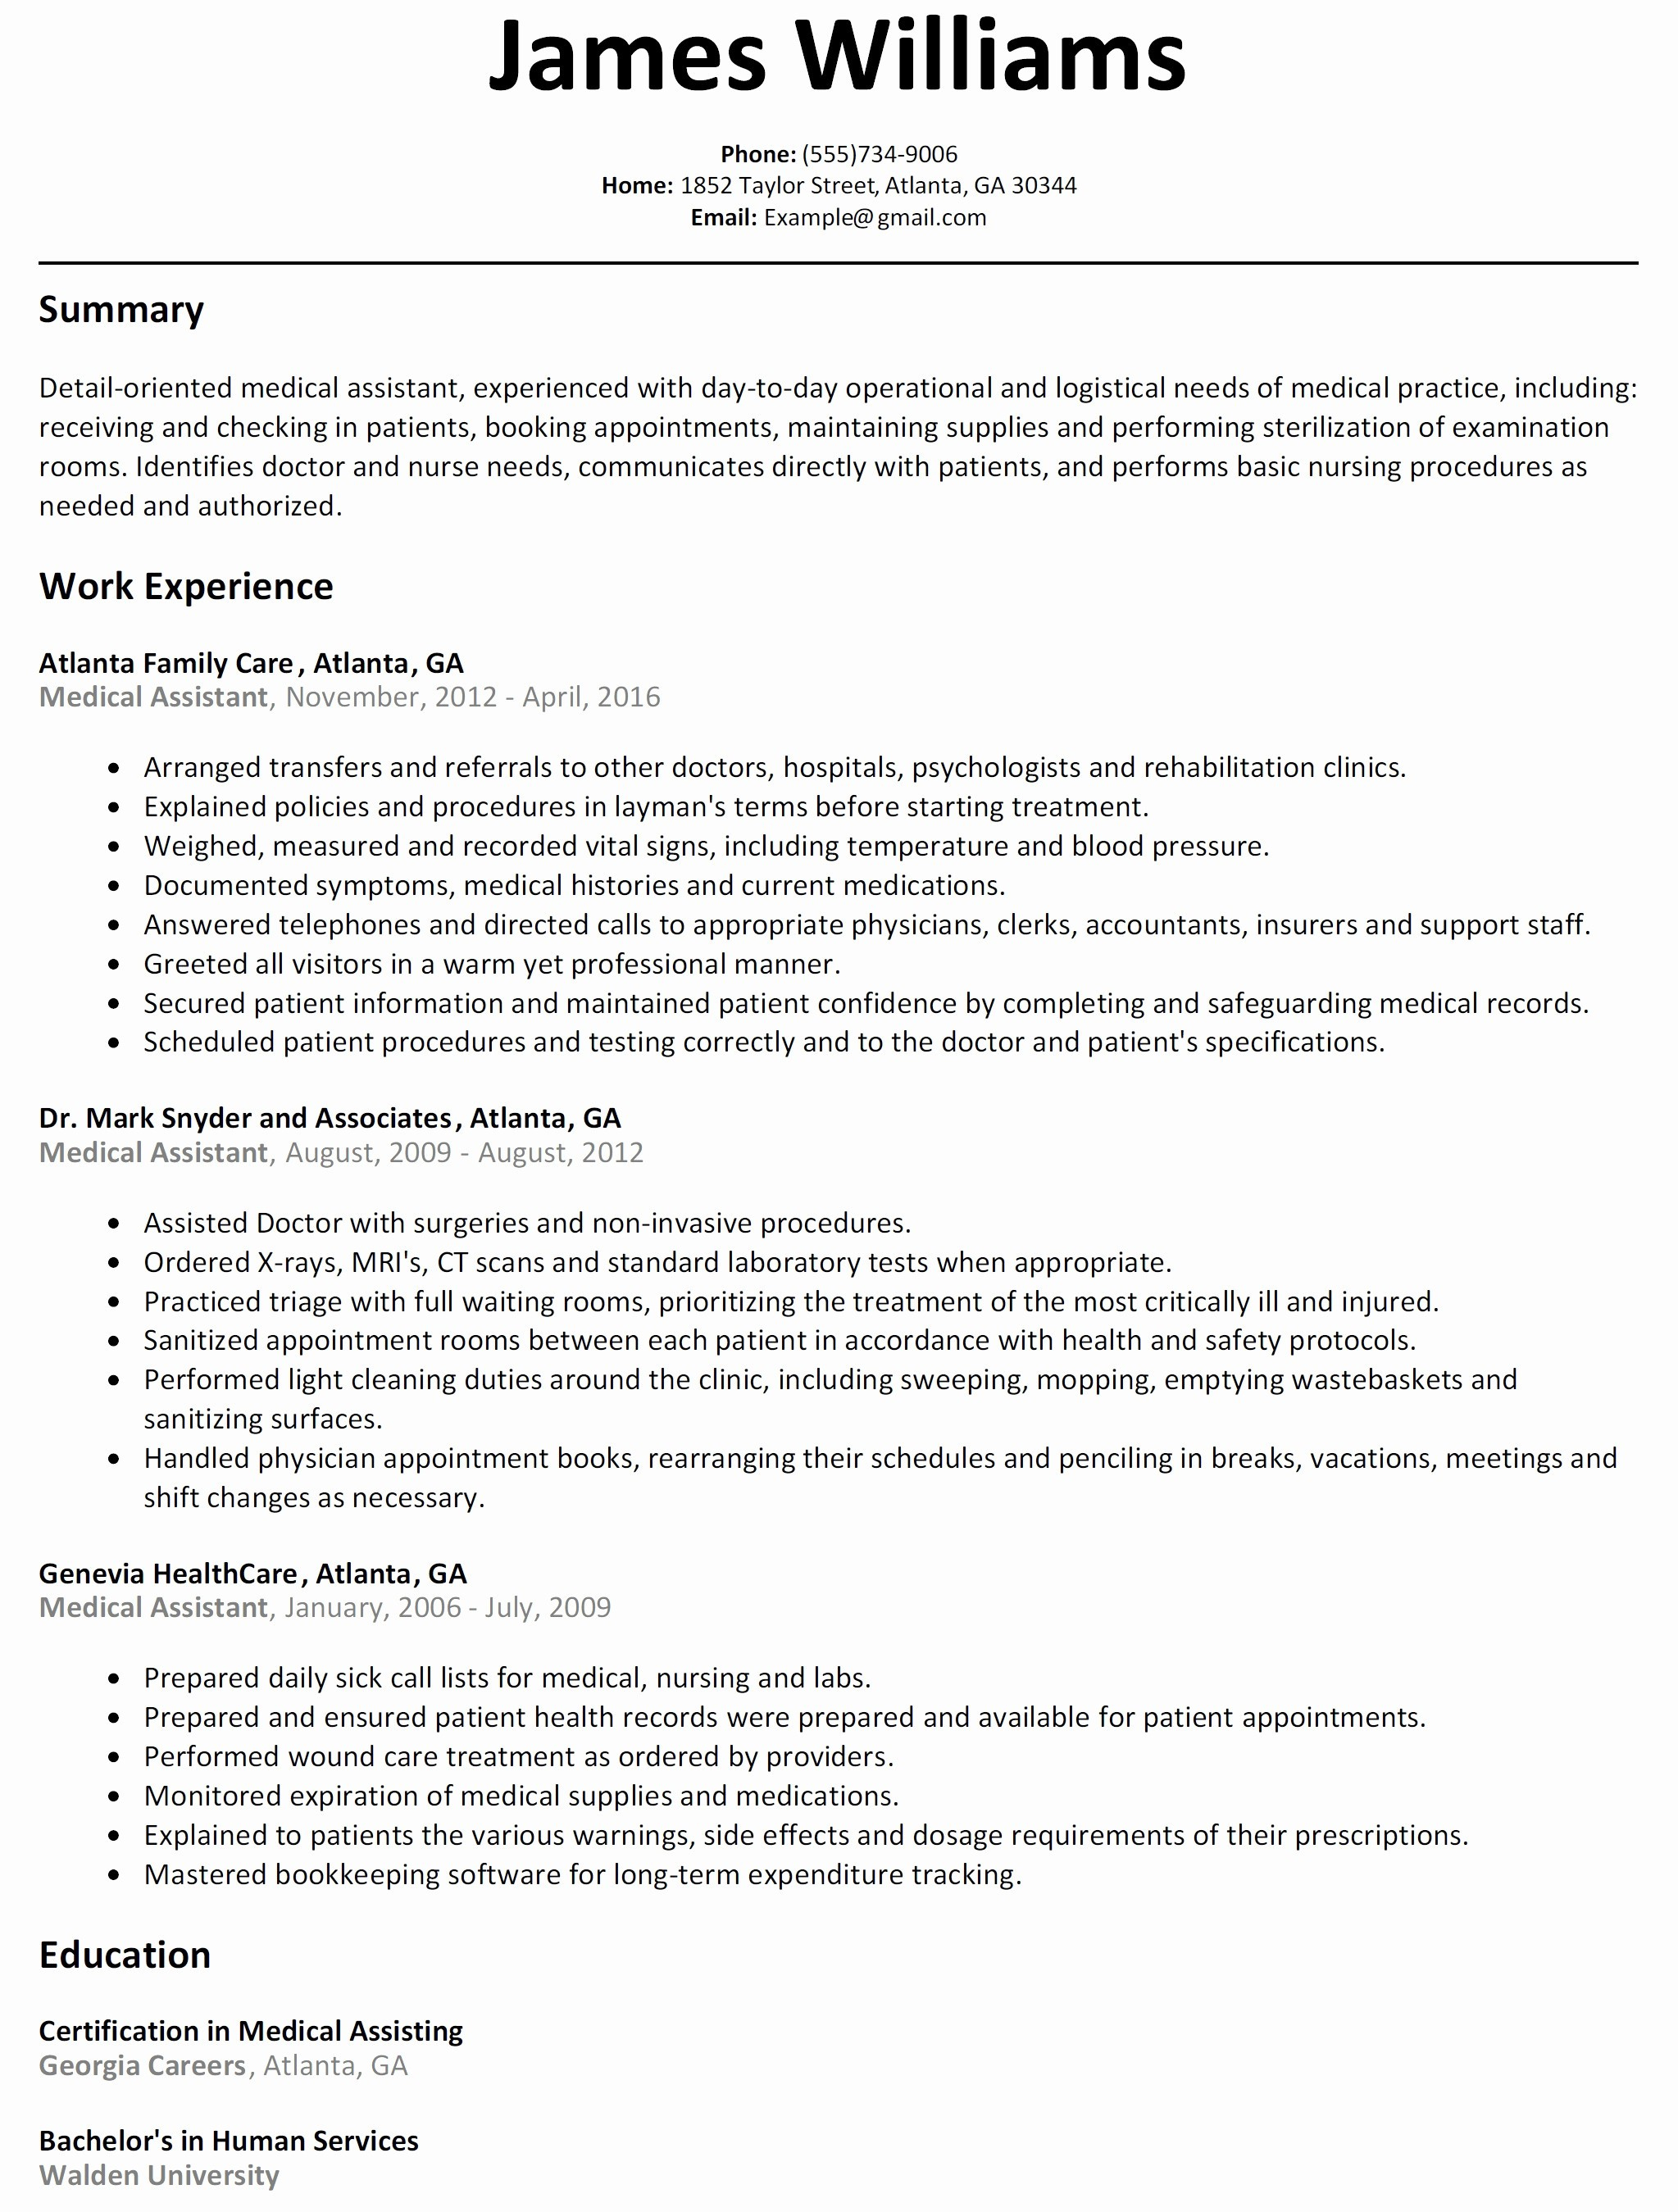 Medical Billing and Coding Resume - 23 Medical Billing and Coding Resume